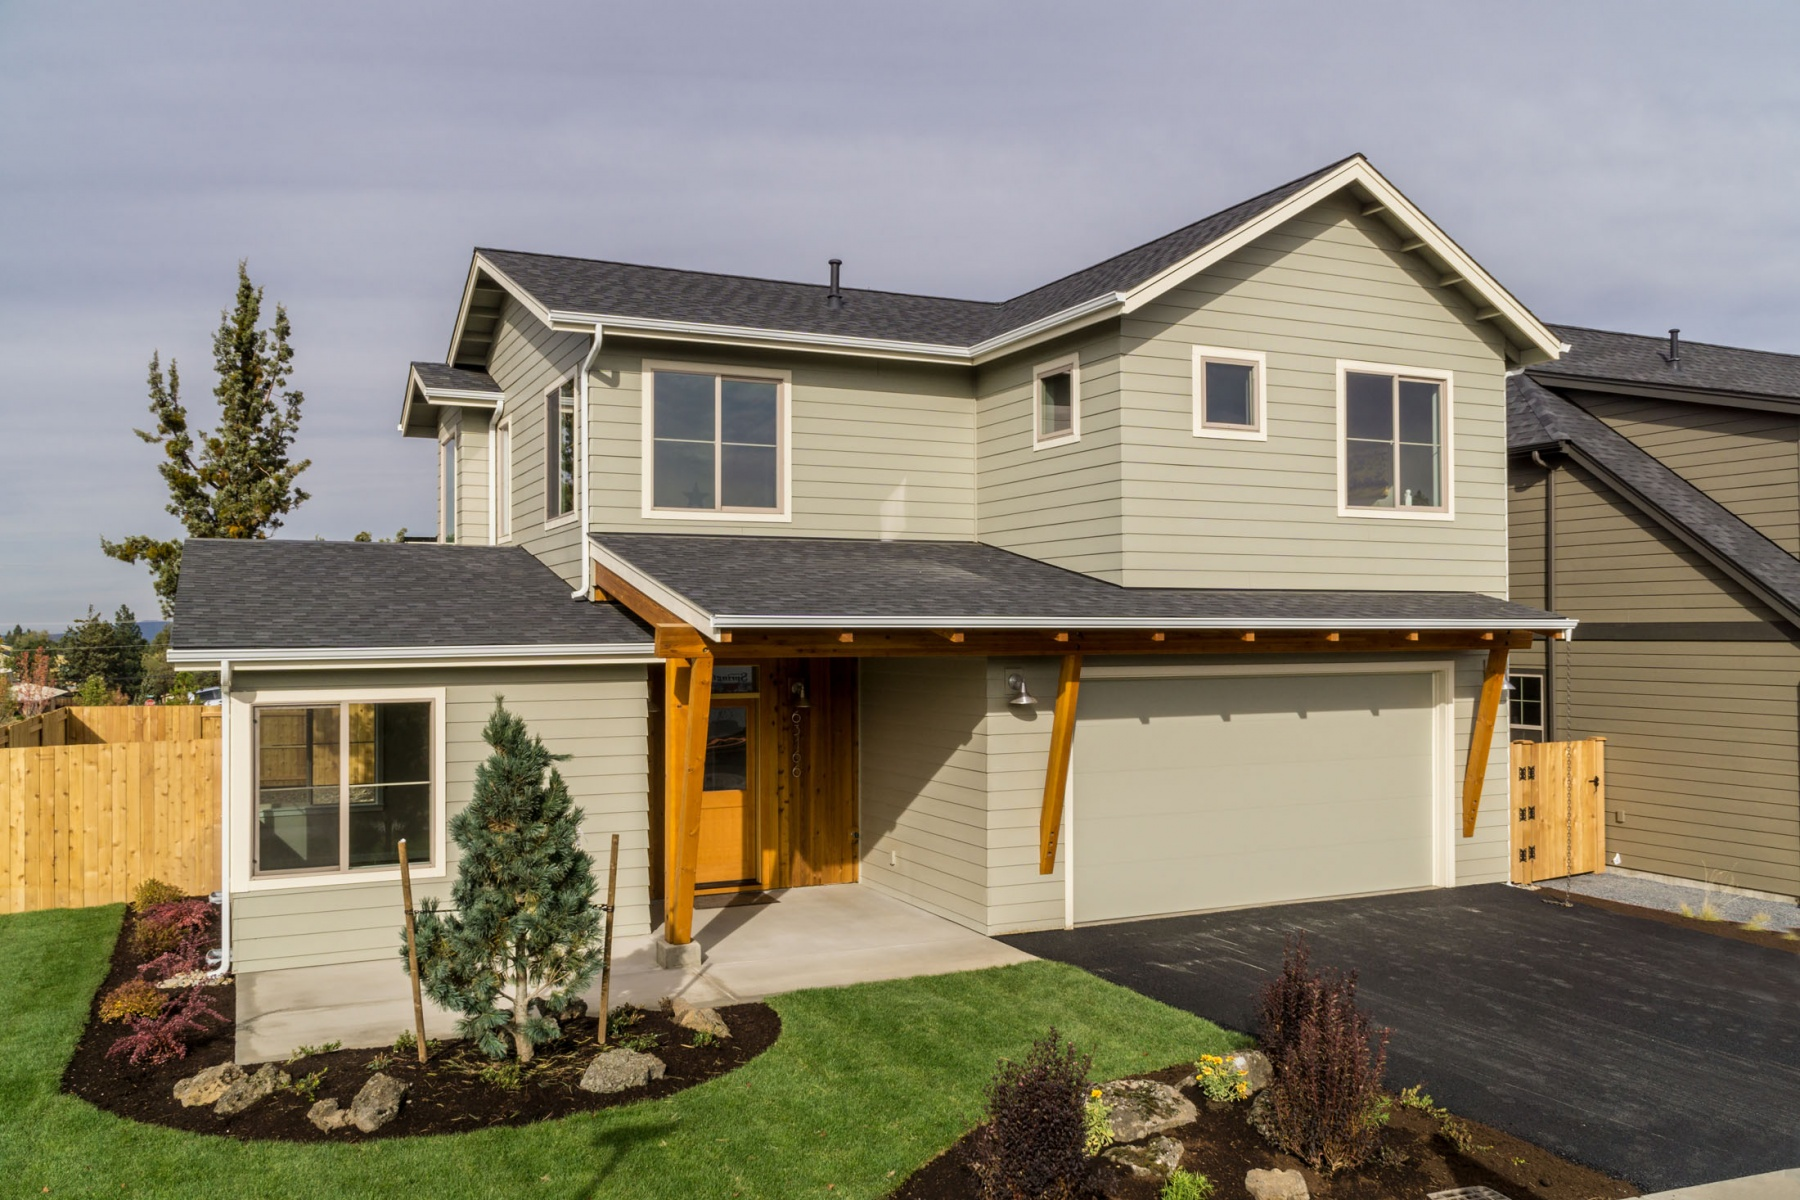 Single Family Home for Sale at North Mountain View Estates 63166 NE Iner Loop Bend, Oregon 97702 United States